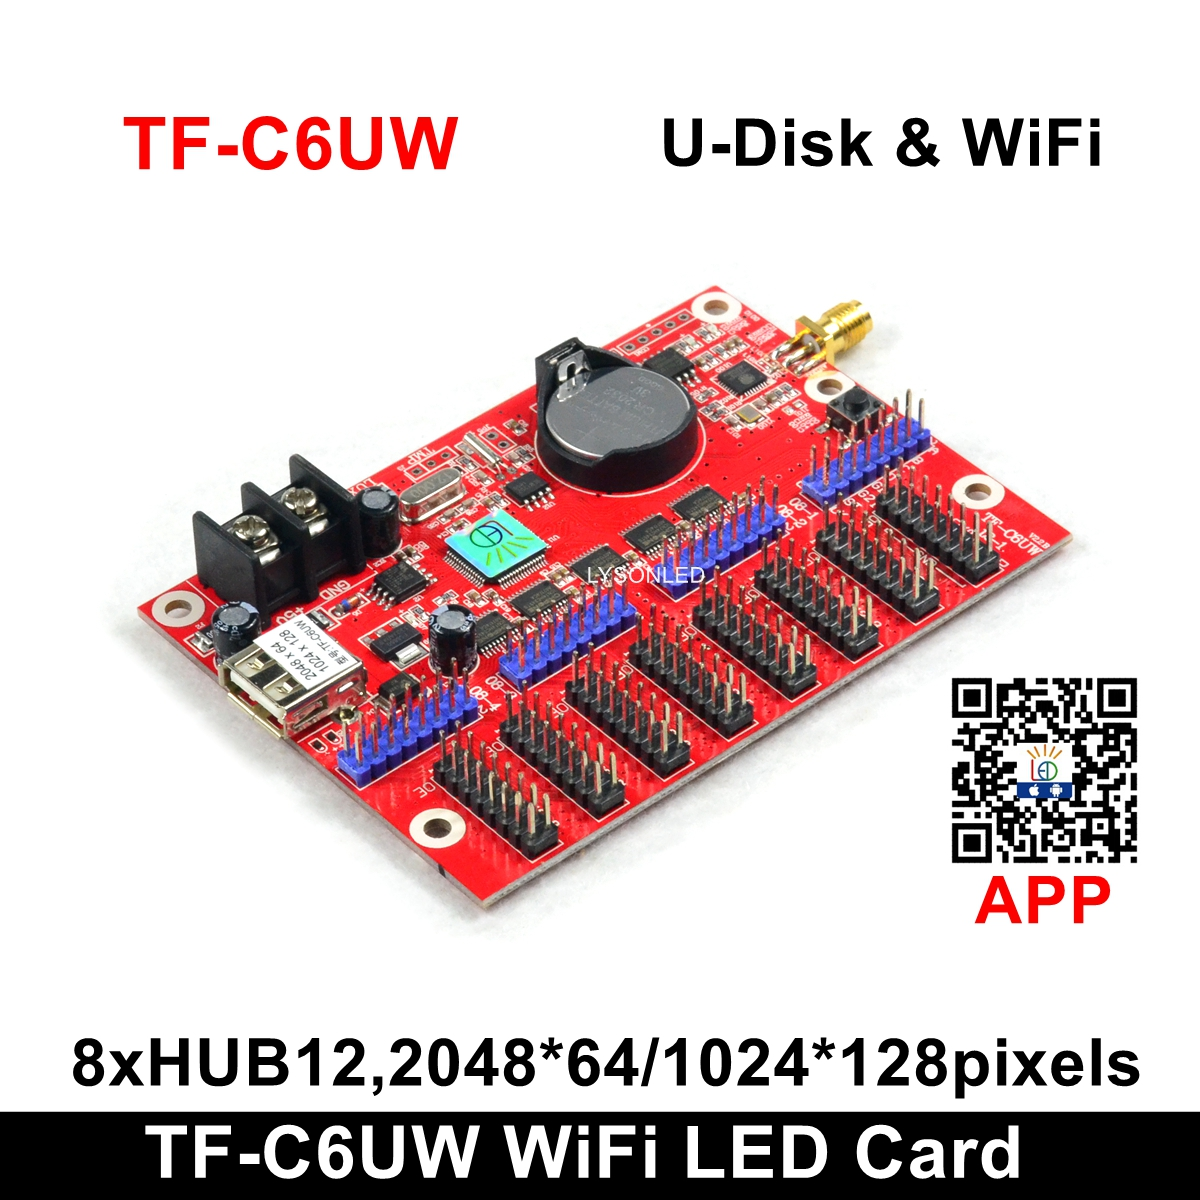 Factory Price LongGreat TF-C6UW WIFI Communication LED Display Card, Support 1024*128 Pixels P10 Single Color LED Scrolling Sign